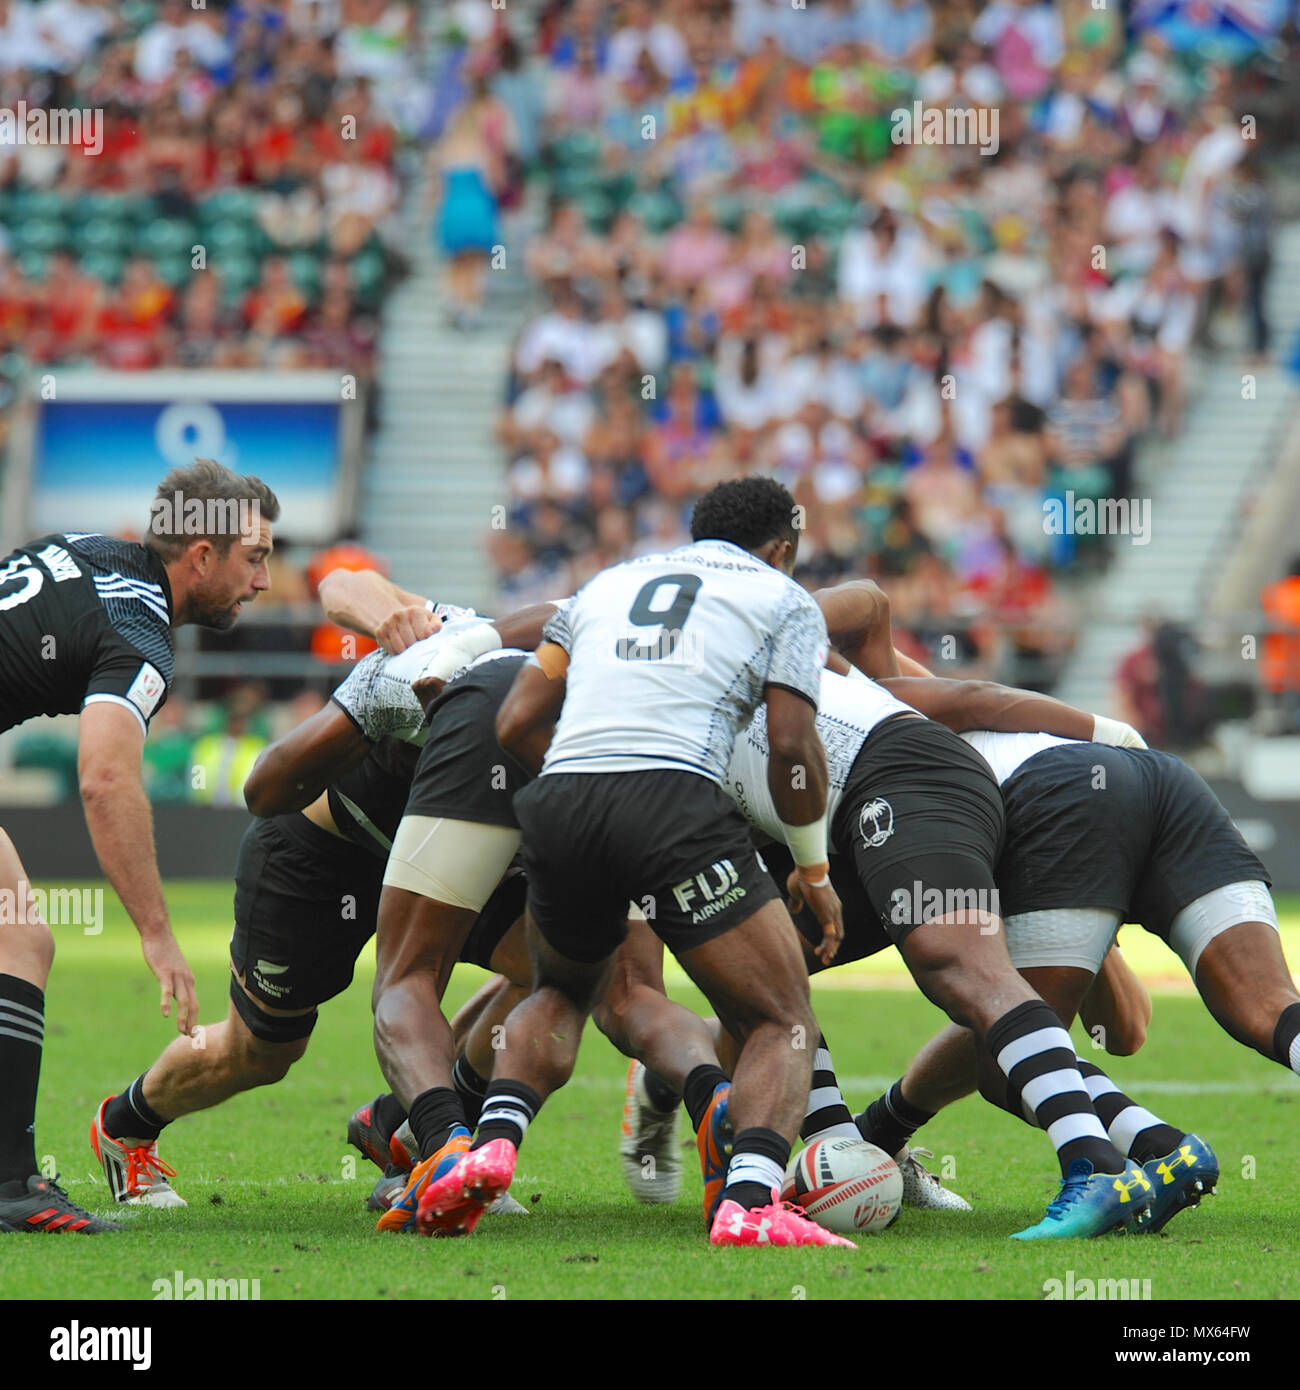 Twickenham Stadium, London, UK. 2nd Jun, 2018. Players locked into a scrum during the Fiji V New Zealand rugby sevens match at Twickenham Stadium, London, UK.  The match took place during the penultimate stage of the HSBC World Rugby Sevens Series. The series sees 20 international teams competing in rapid 14 minute matches (two halves of seven minutes) across 11 different cities around the world - the finale will be in Paris in June. Credit: Michael Preston/Alamy Live News - Stock Image